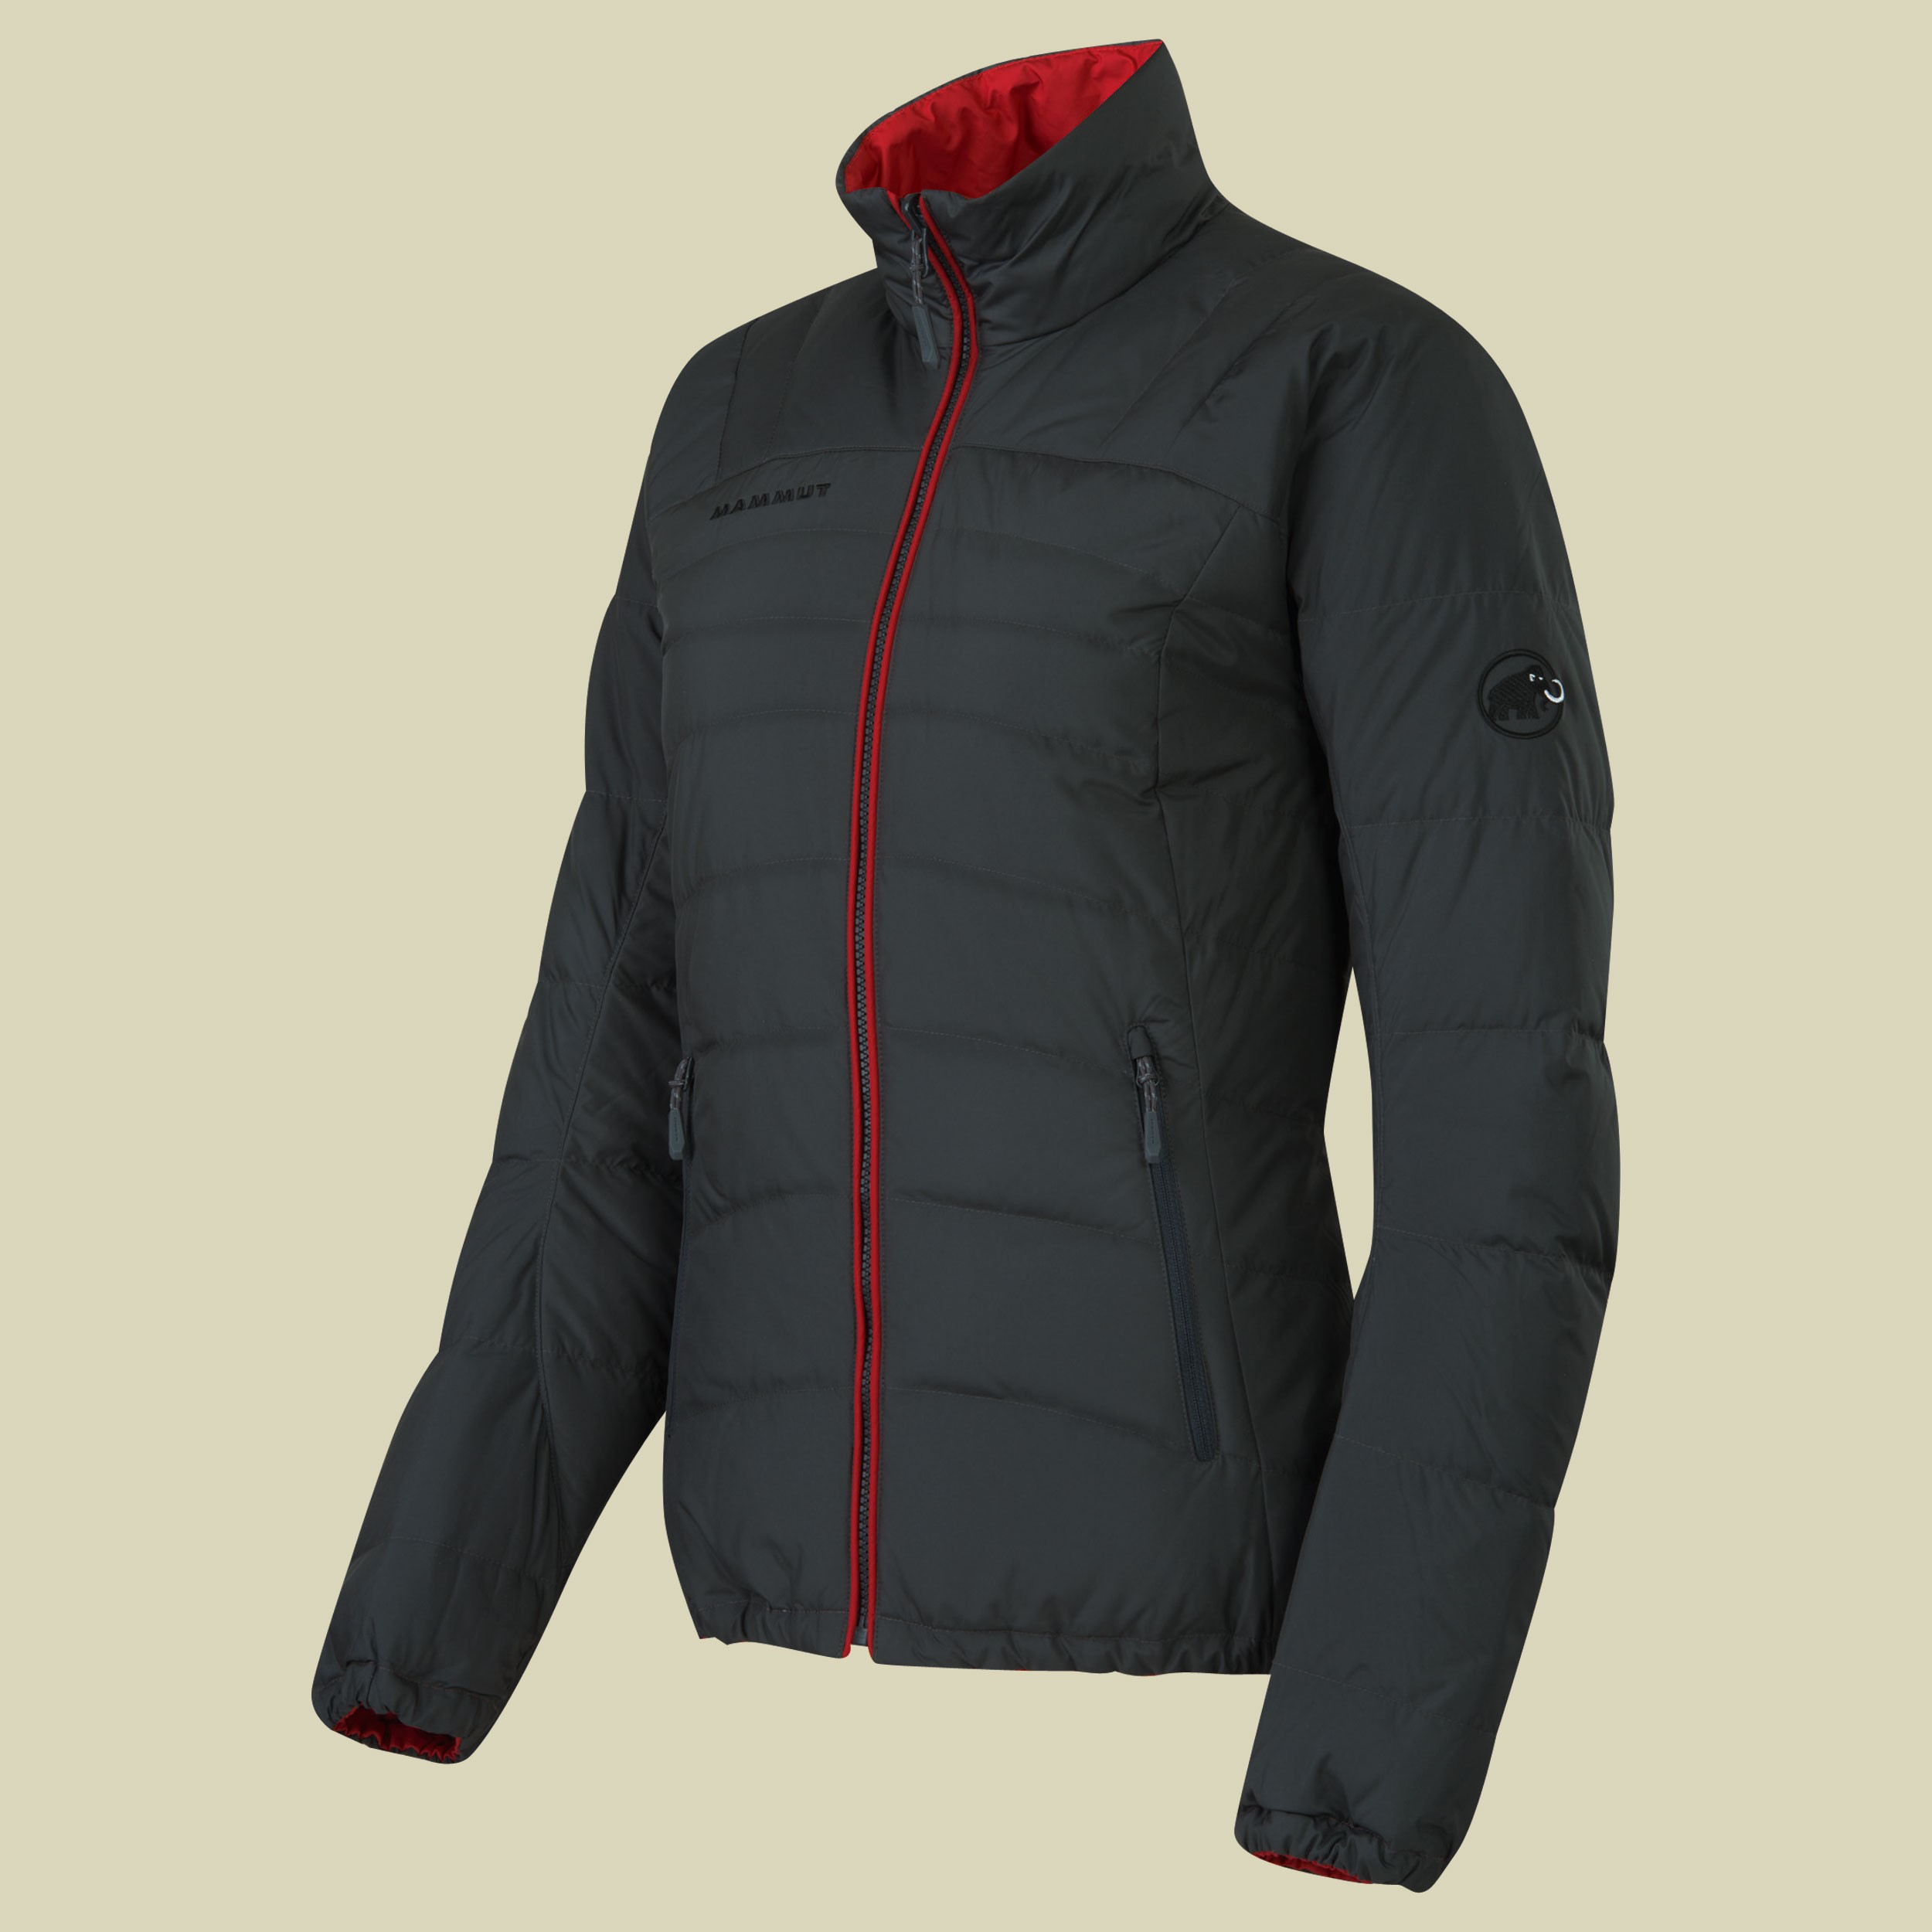 Blackfin Jacket Women